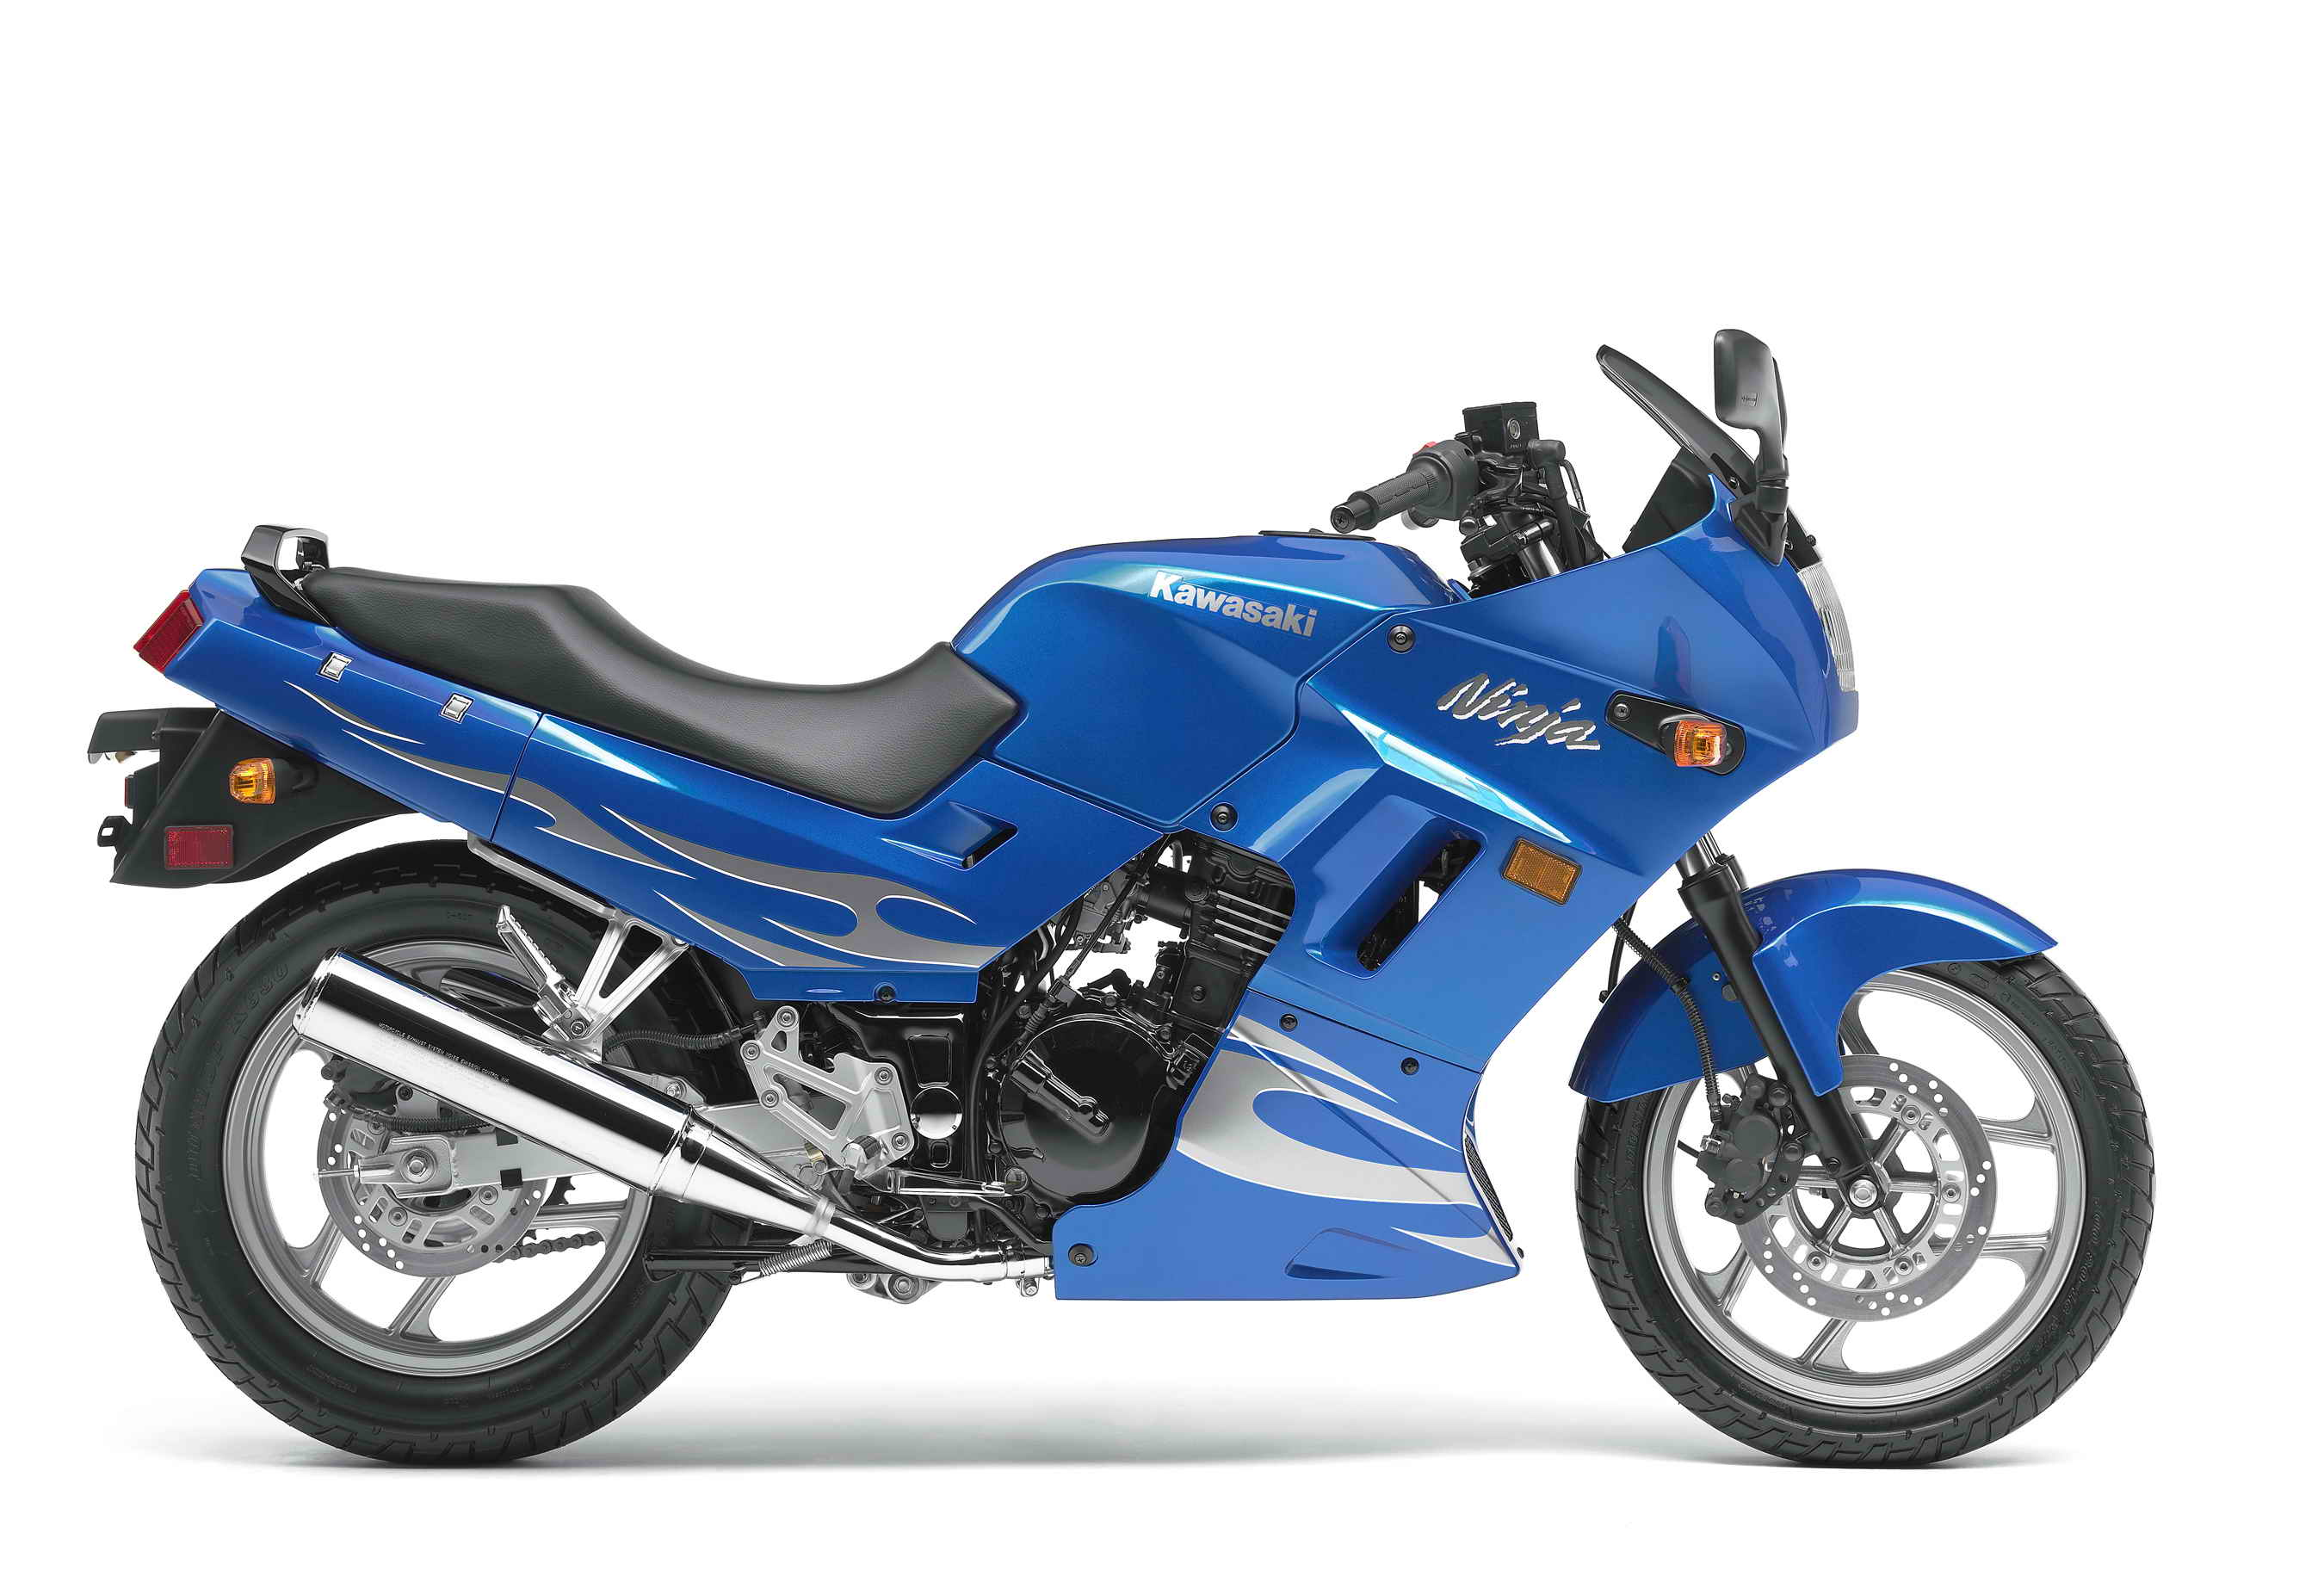 2007 kawasaki ninja 250r review top speed. Black Bedroom Furniture Sets. Home Design Ideas